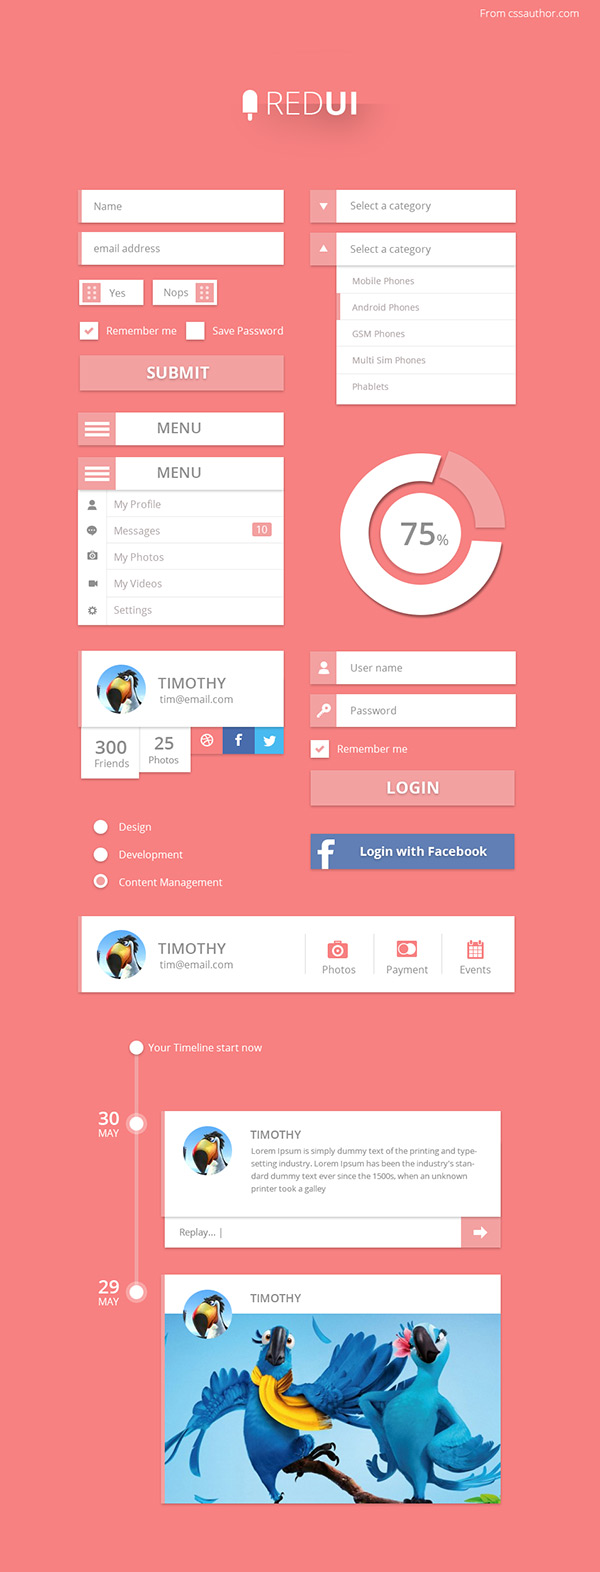 Red UI by Arun in 35 Fresh, Free and Flat UI Kits